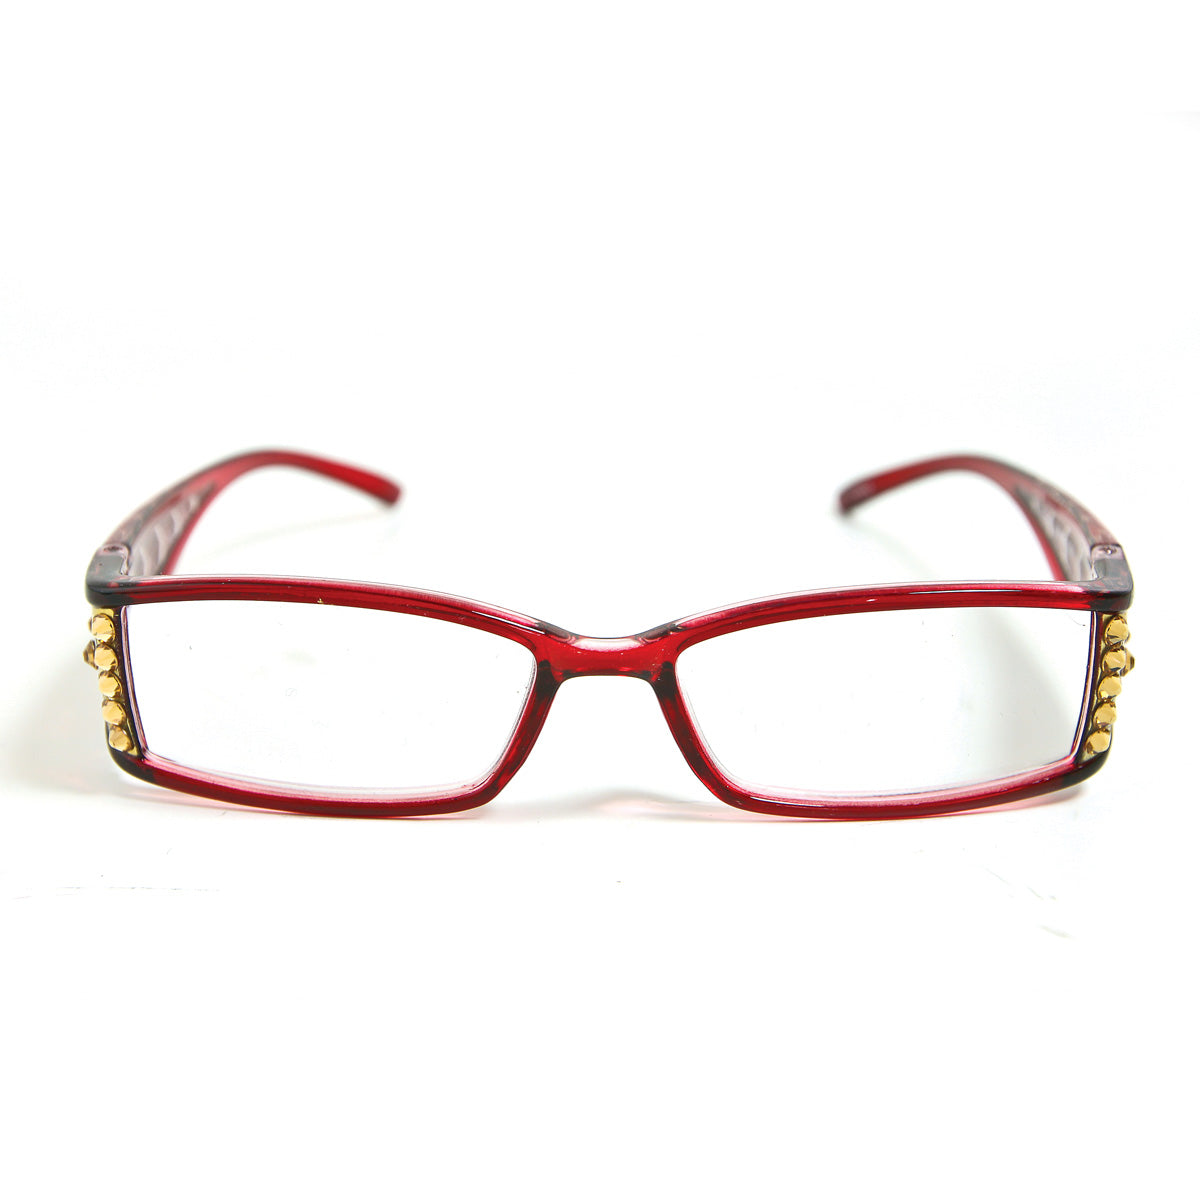 Reading Glasses Made With Swarovski Elements, red color, front view